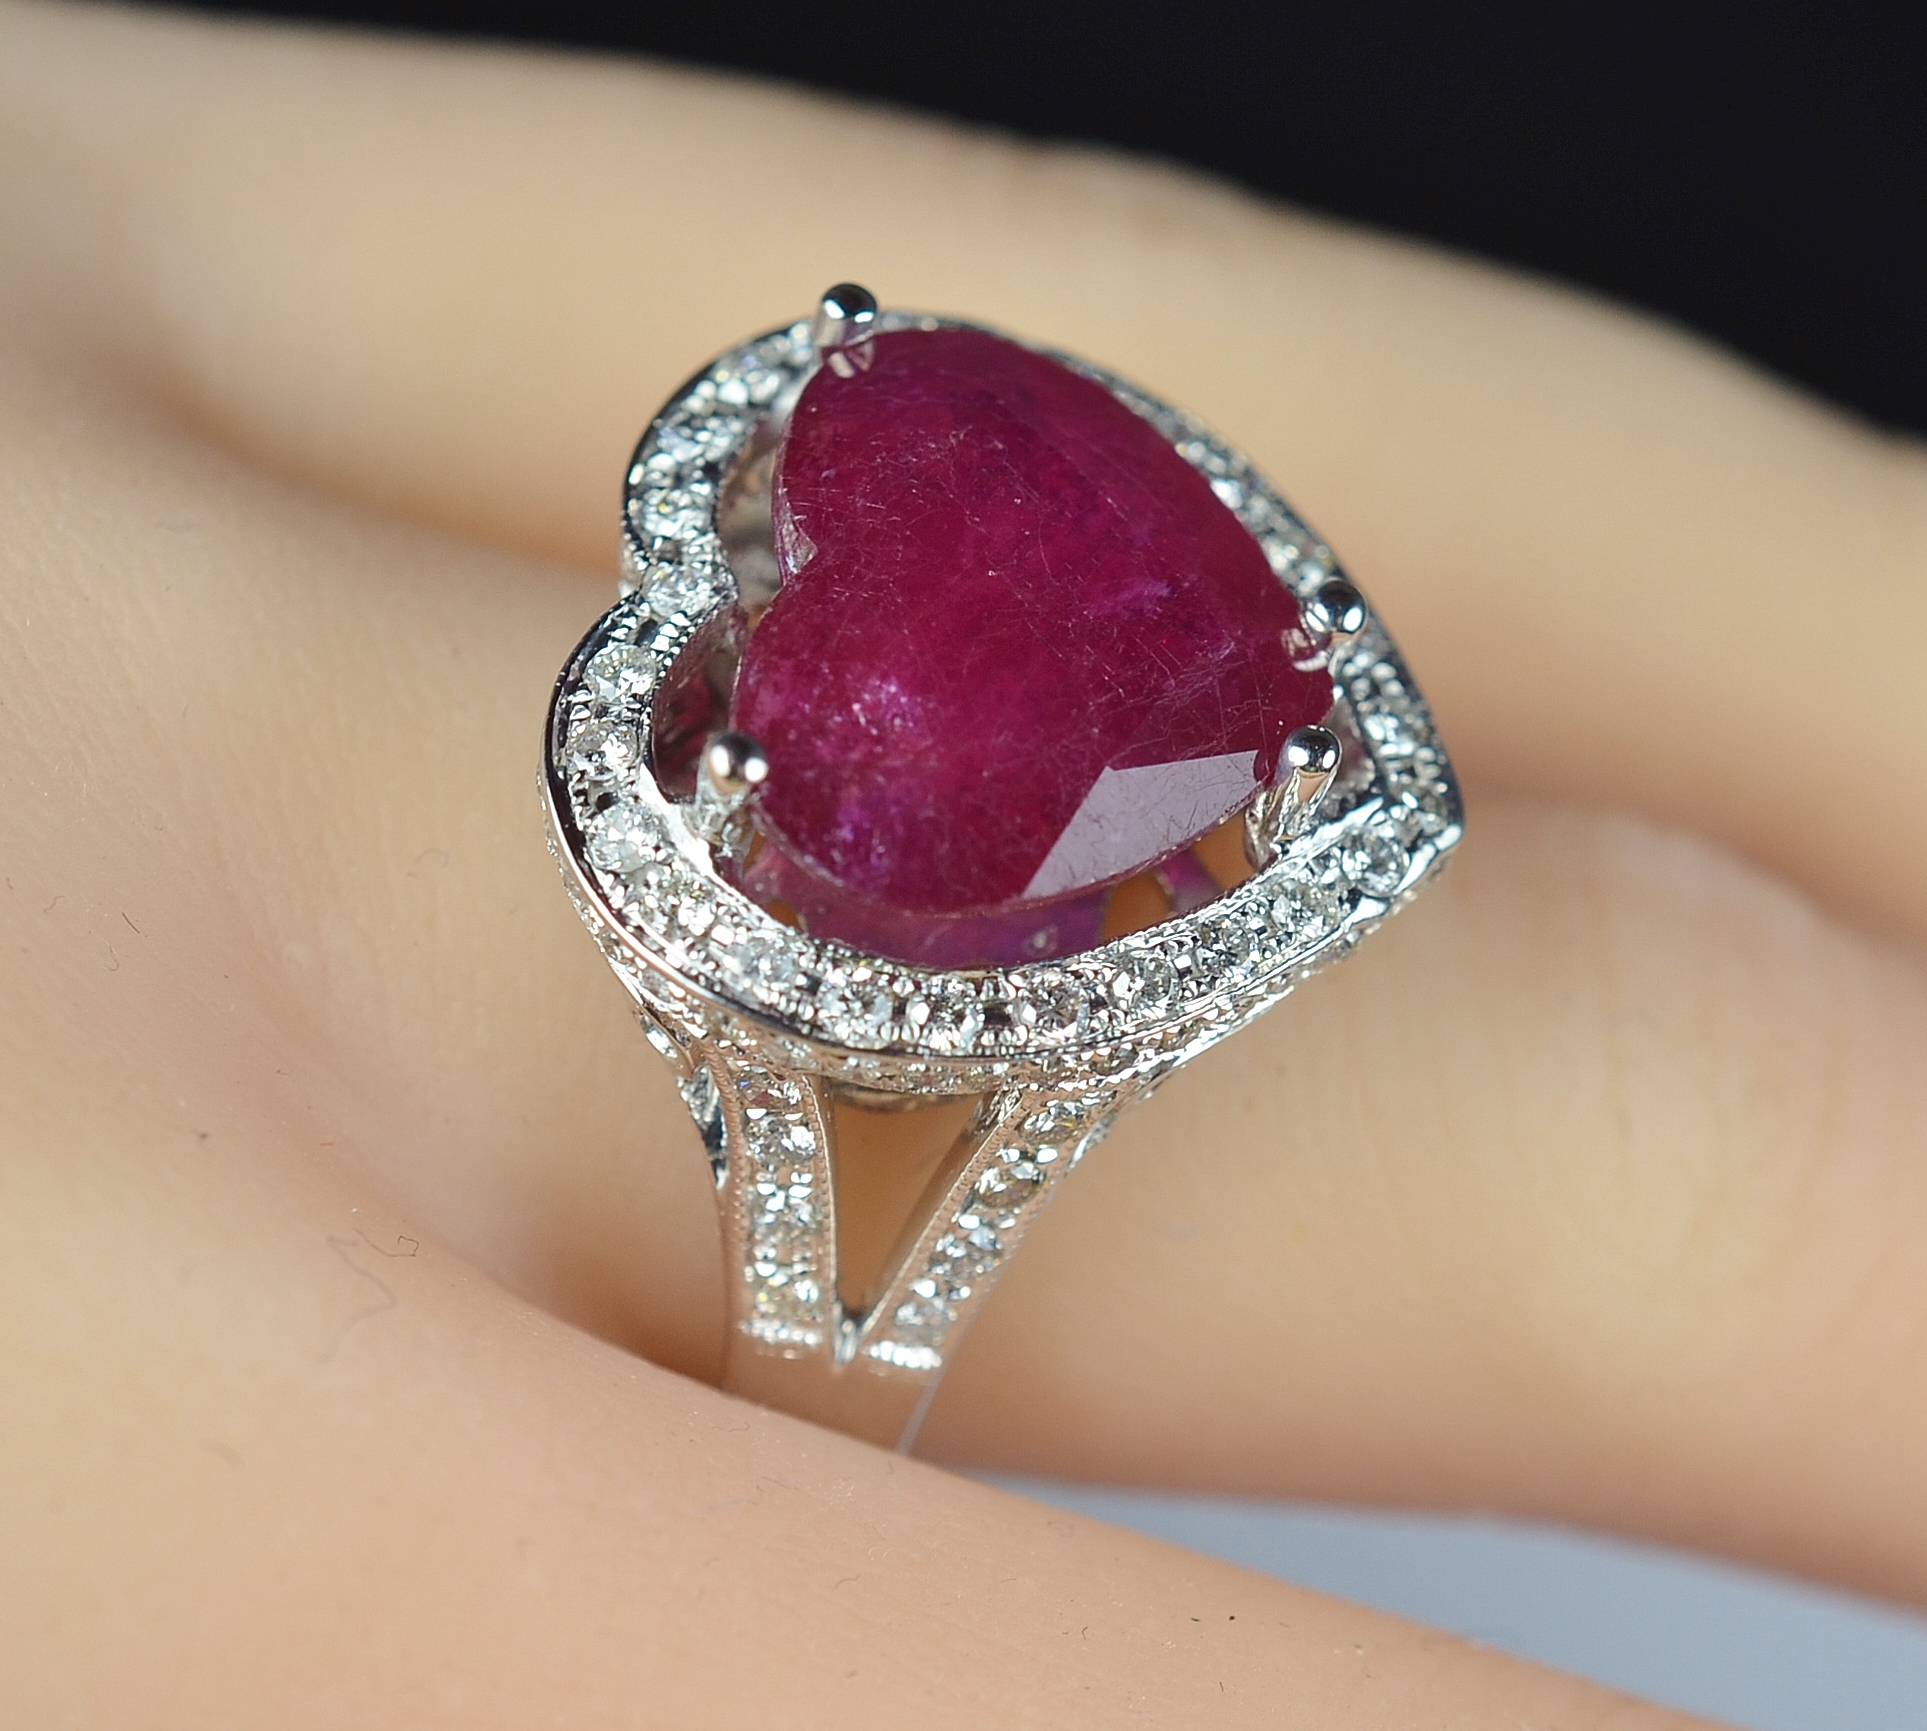 5 764 Retail 18k White Gold Gorgeous Heart Shape Ruby And